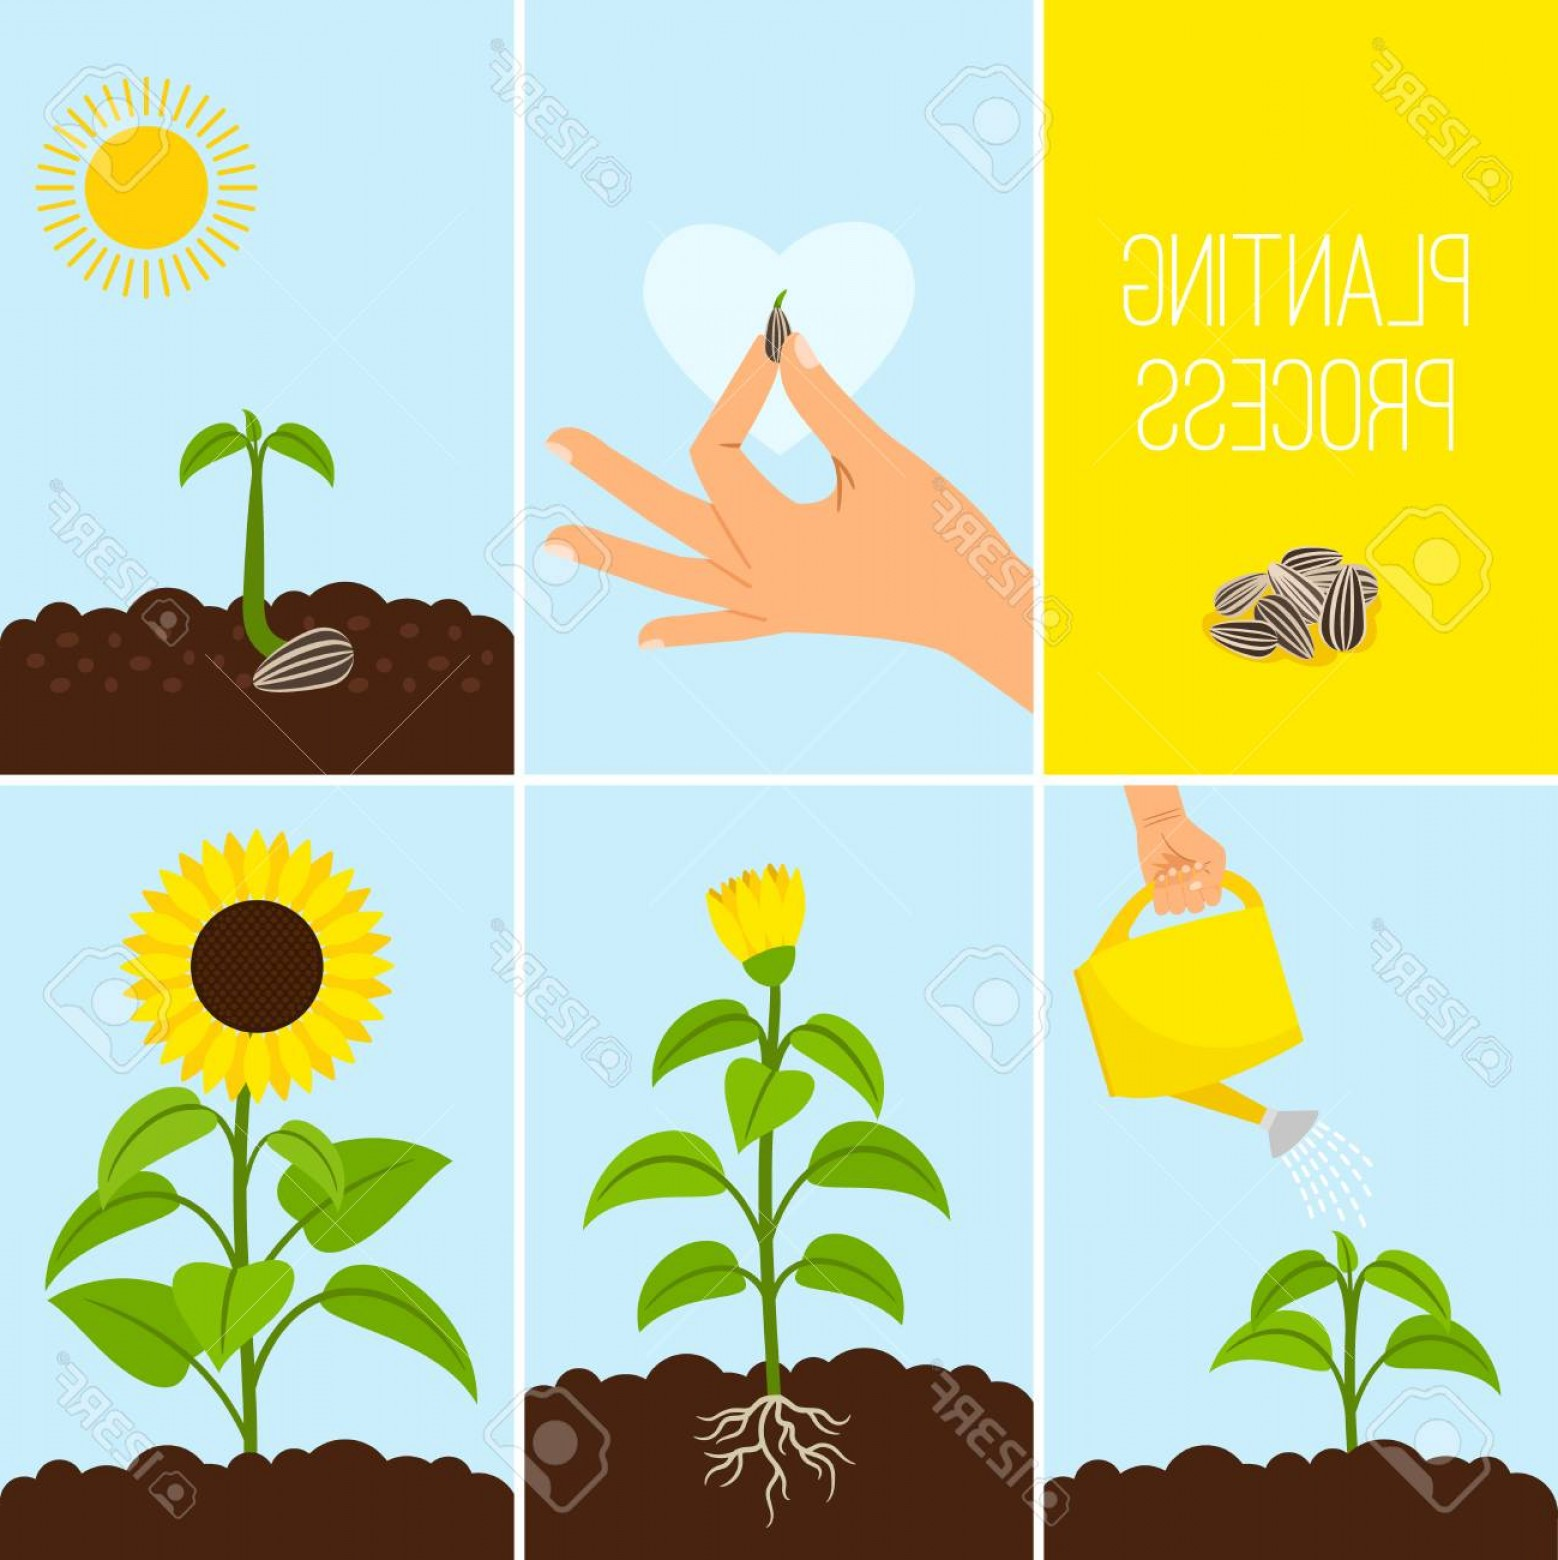 Seed Flower Vectors: Photostock Vector Flower Planting Process Vector Illustration Planting A Seed Watering Growing And Blooming Sunflower